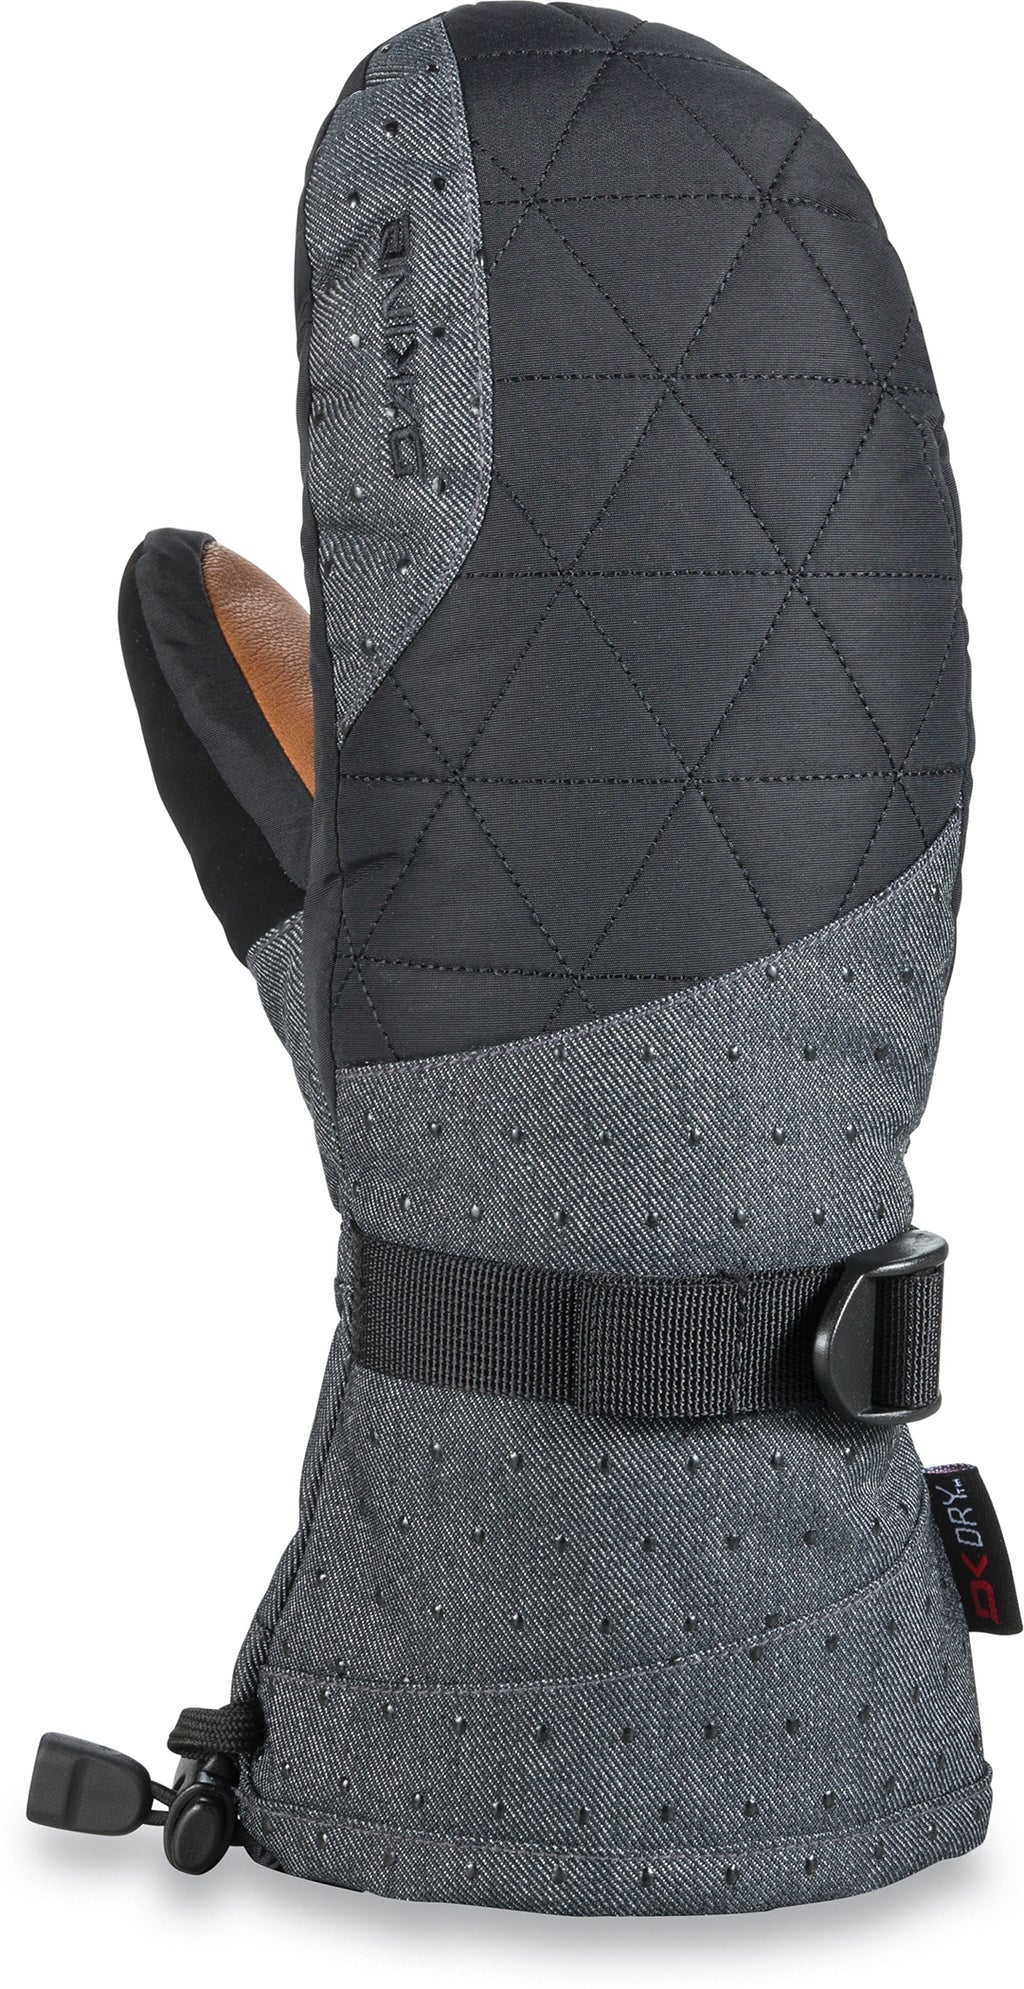 Dakine - Leather Camino Women's Mitt